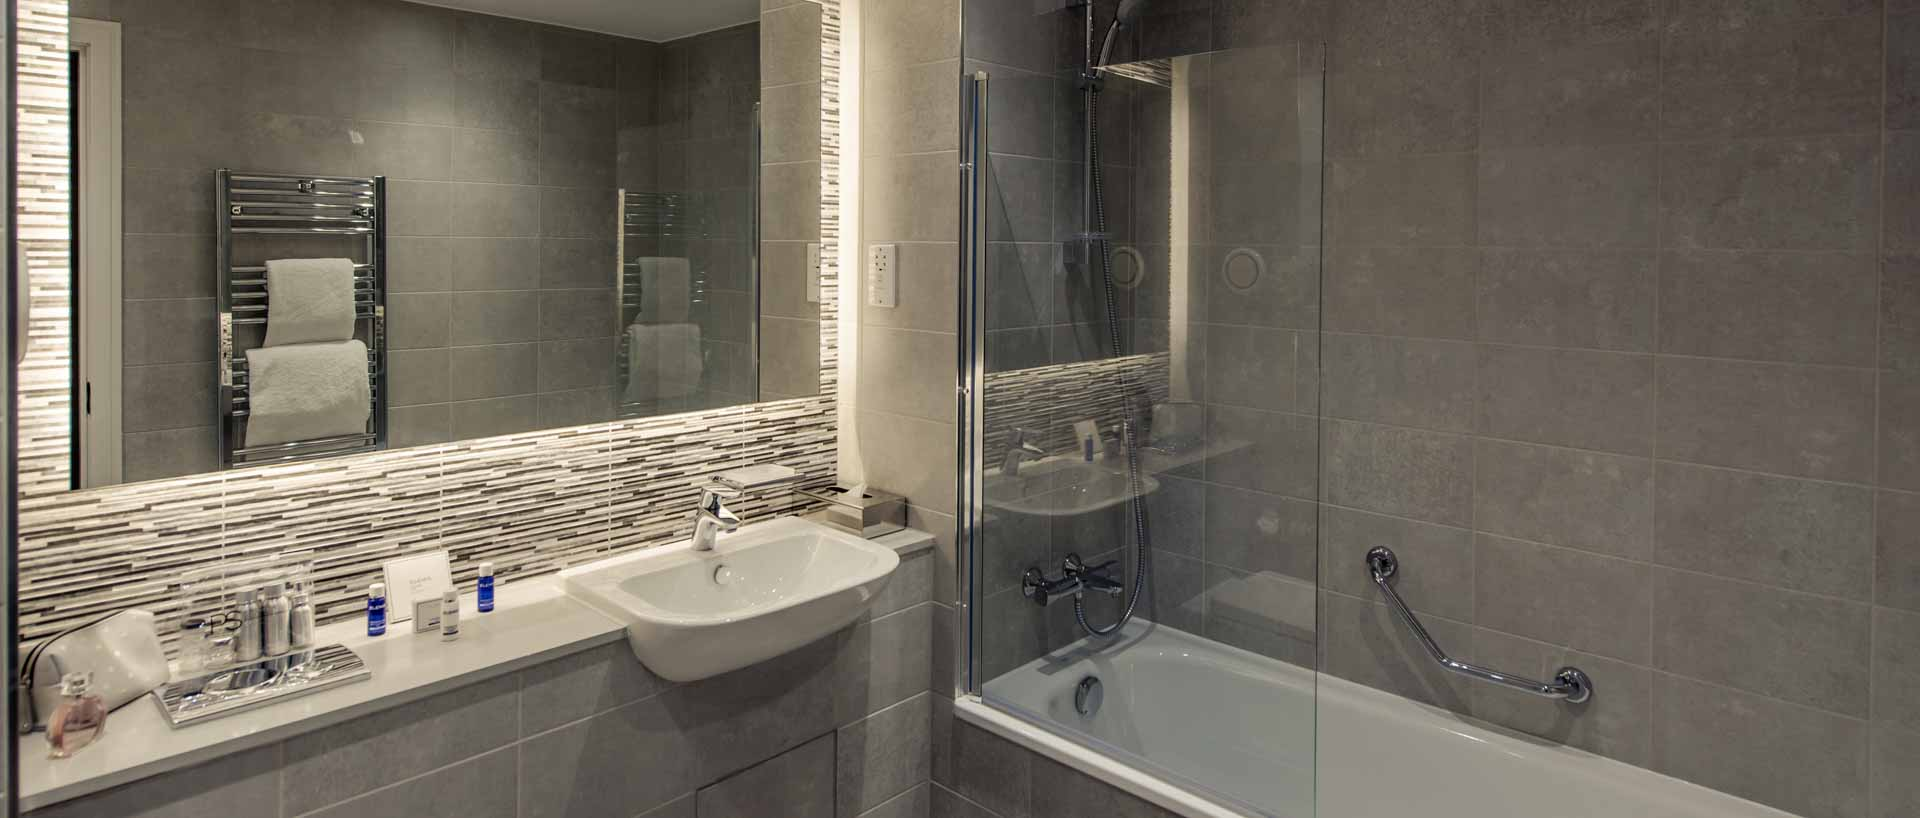 PREMIER SUITES PLUS Glasgow Bath Street one bedroom bathroom